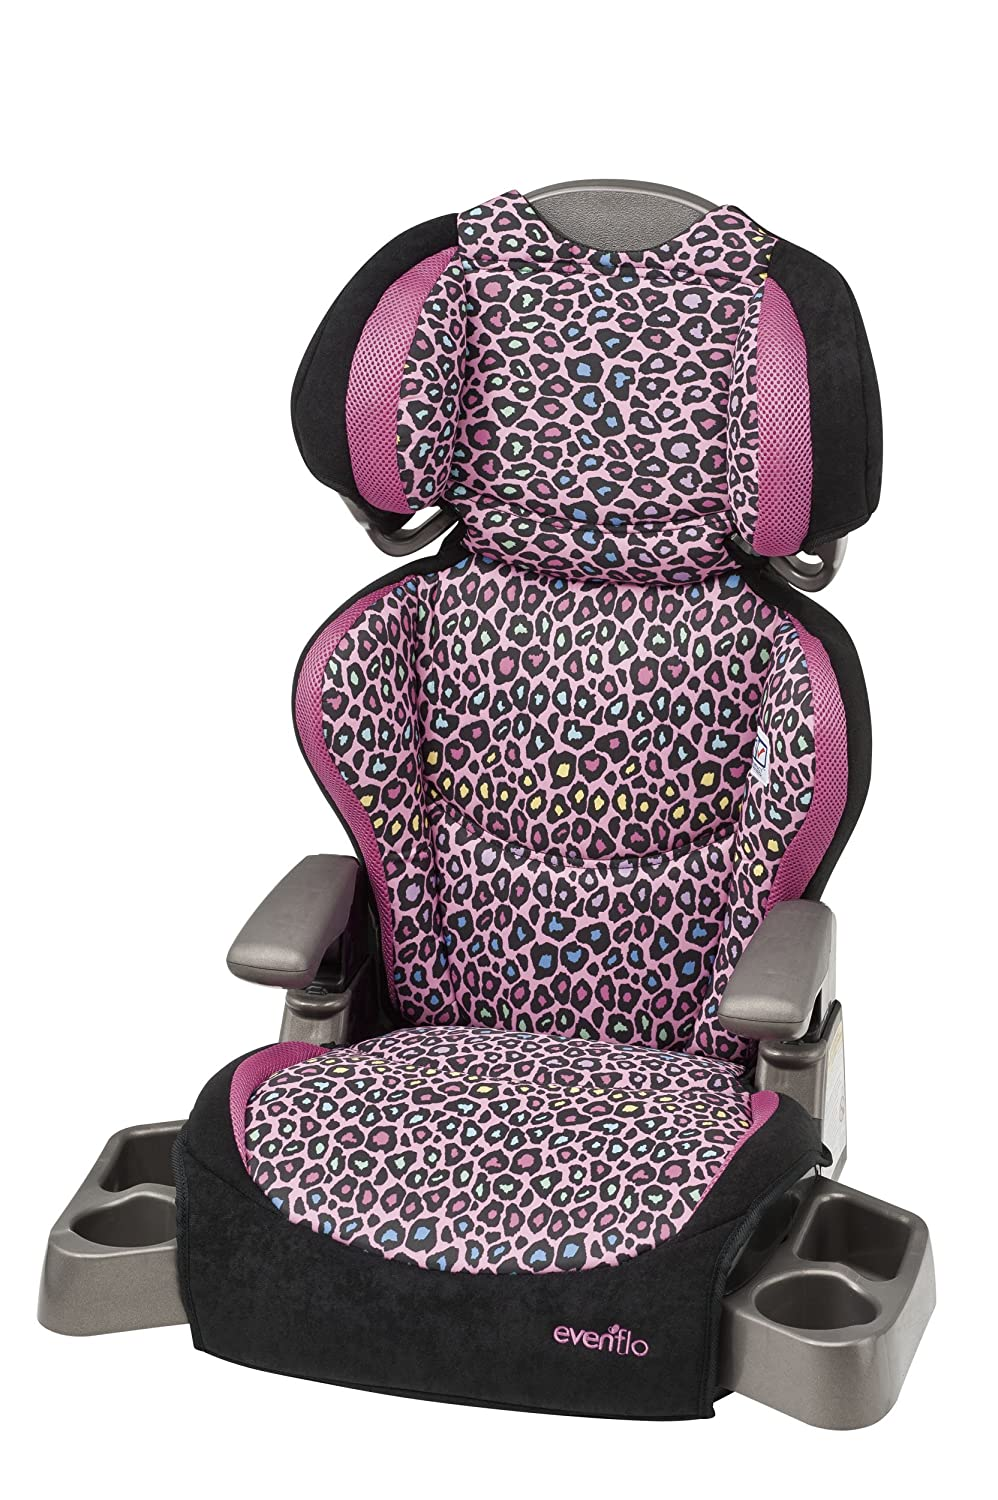 Amazon Evenflo Bid Kid Lx High Back Booster Seat Neon Leopard Child Safety Car Seats Baby